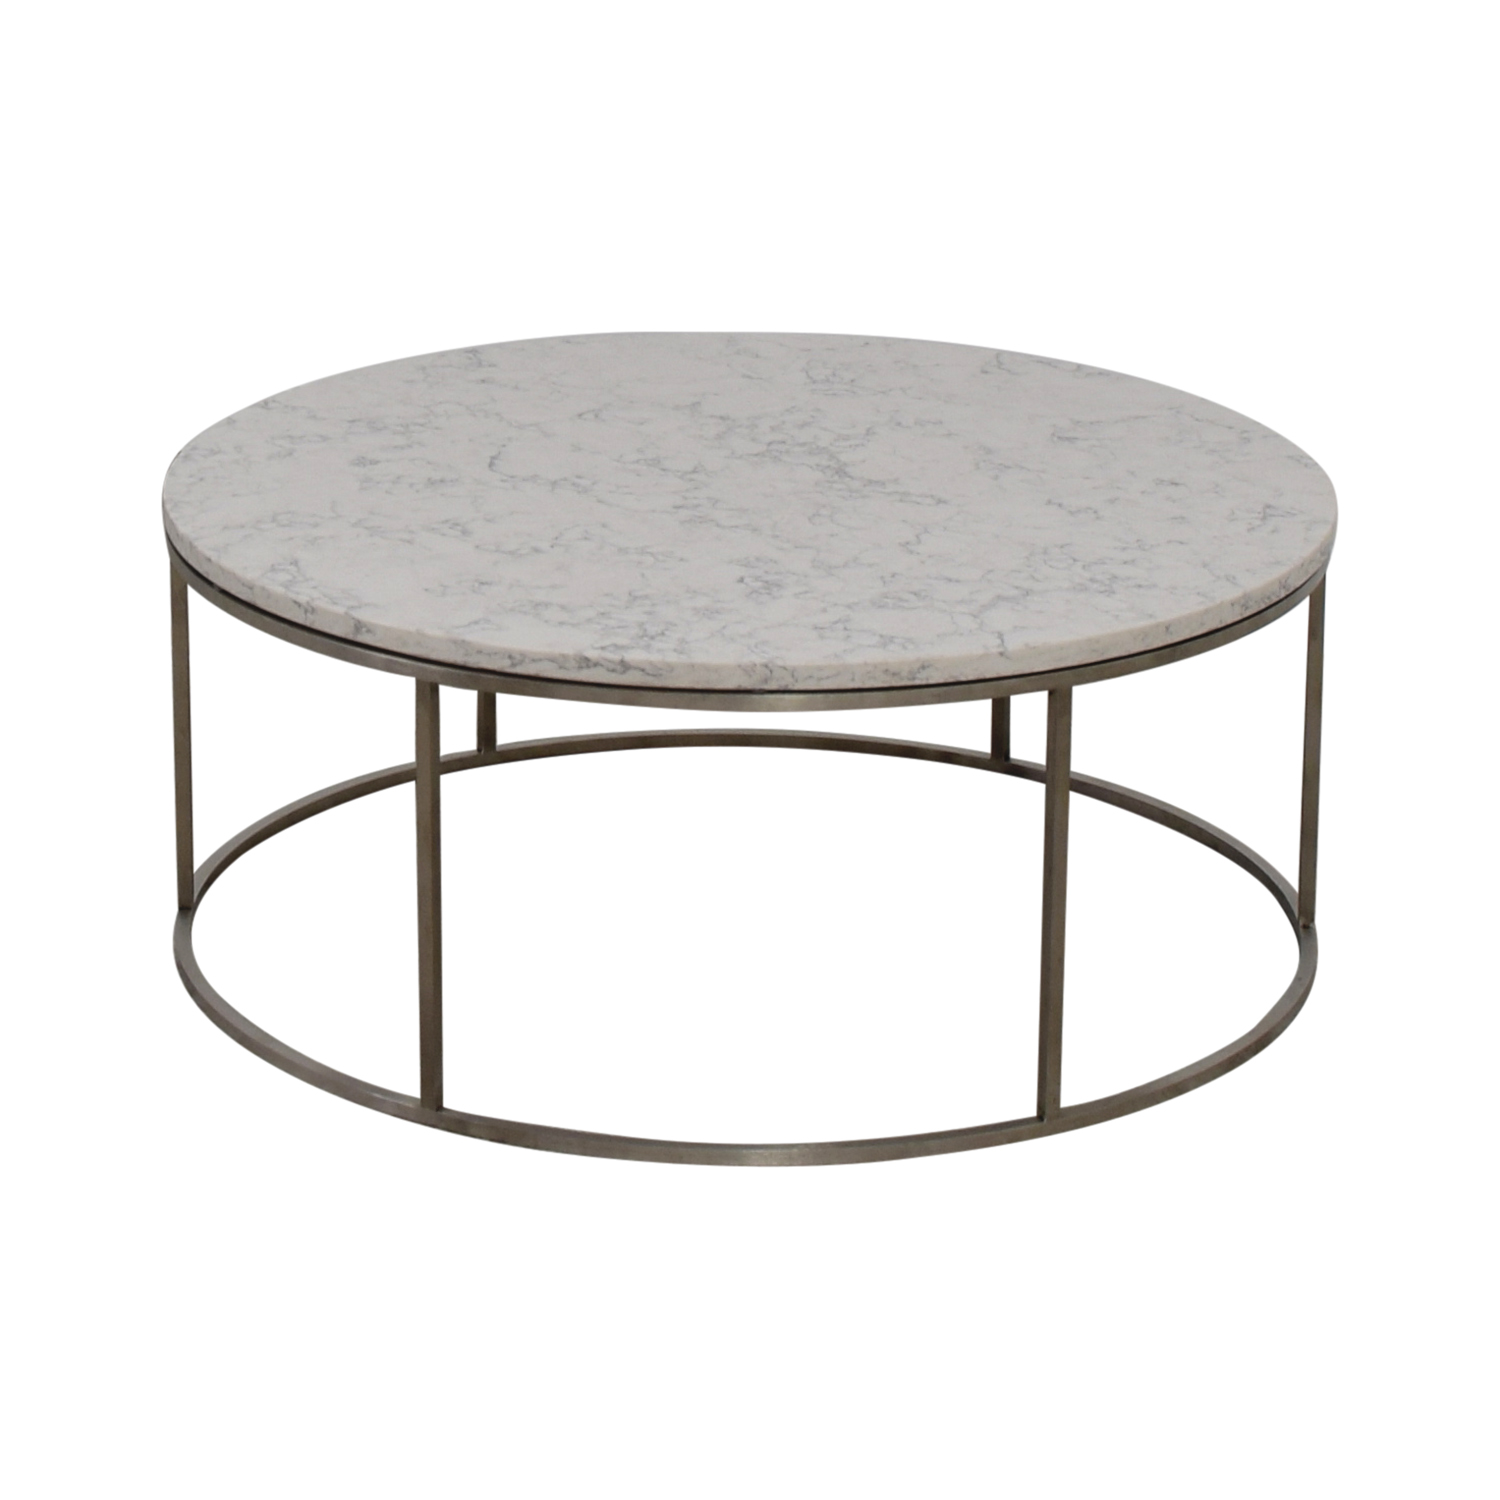 53 off room board room board round marble top coffee table tables Coffee tables with marble tops